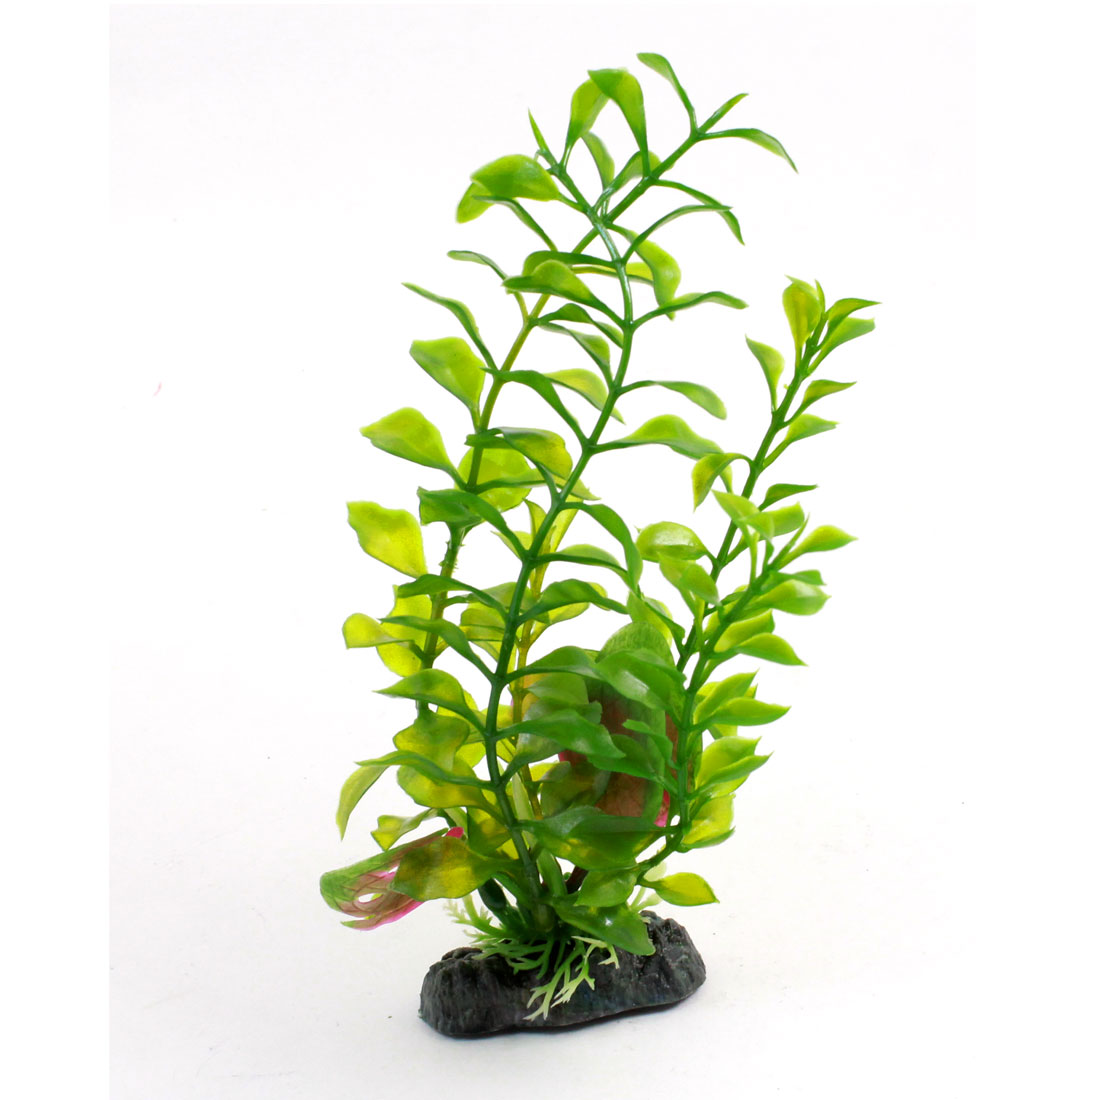 "Fish Tank Emulational Plastic Aquatic Plant Decoration Green 8.3"" High"